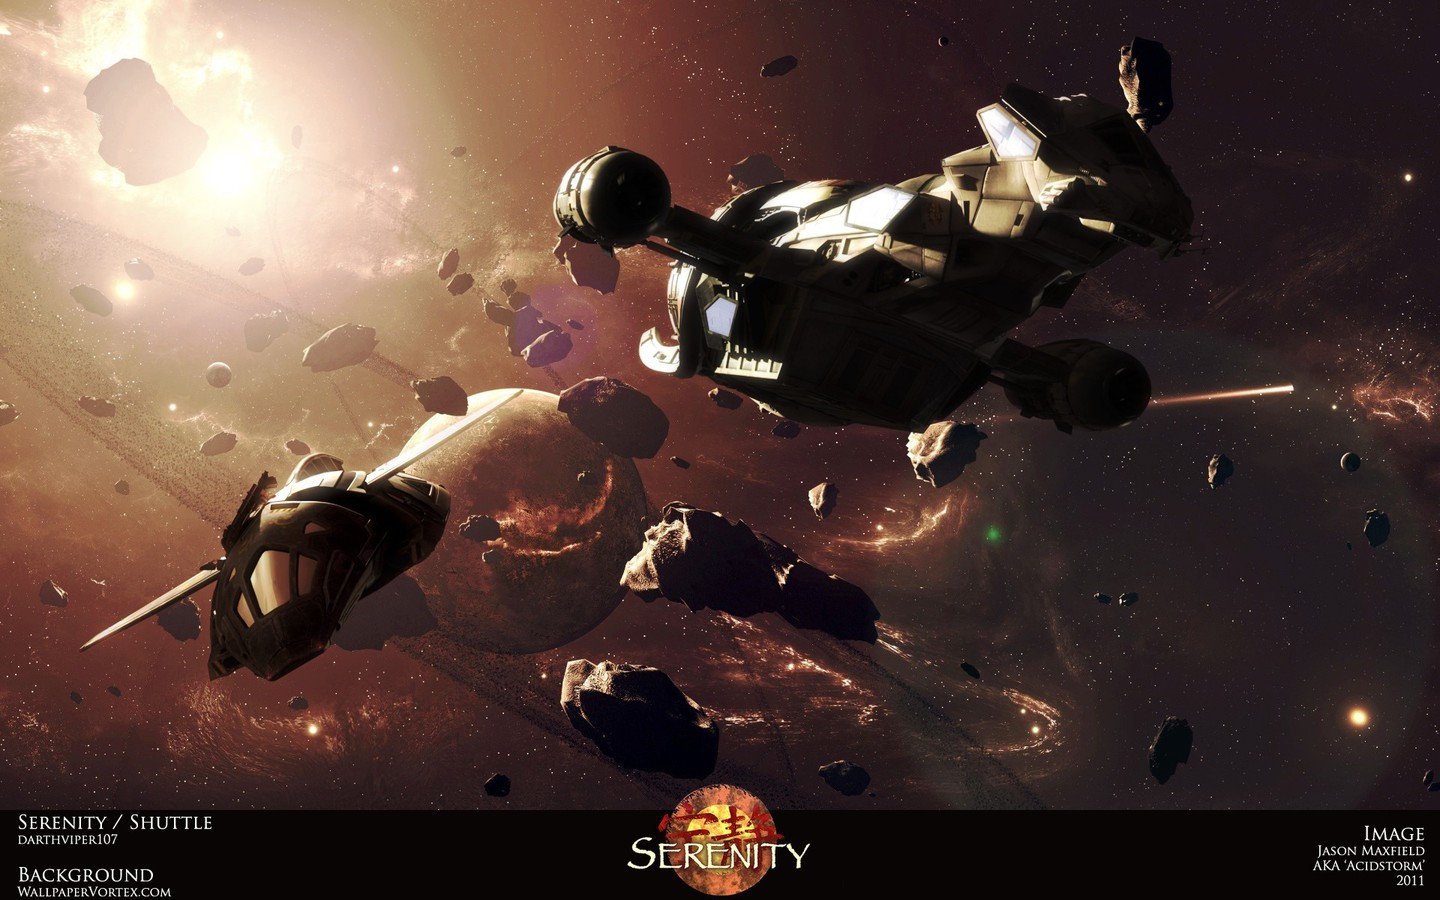 firefly serenity wallpaper table 3 - photo #2